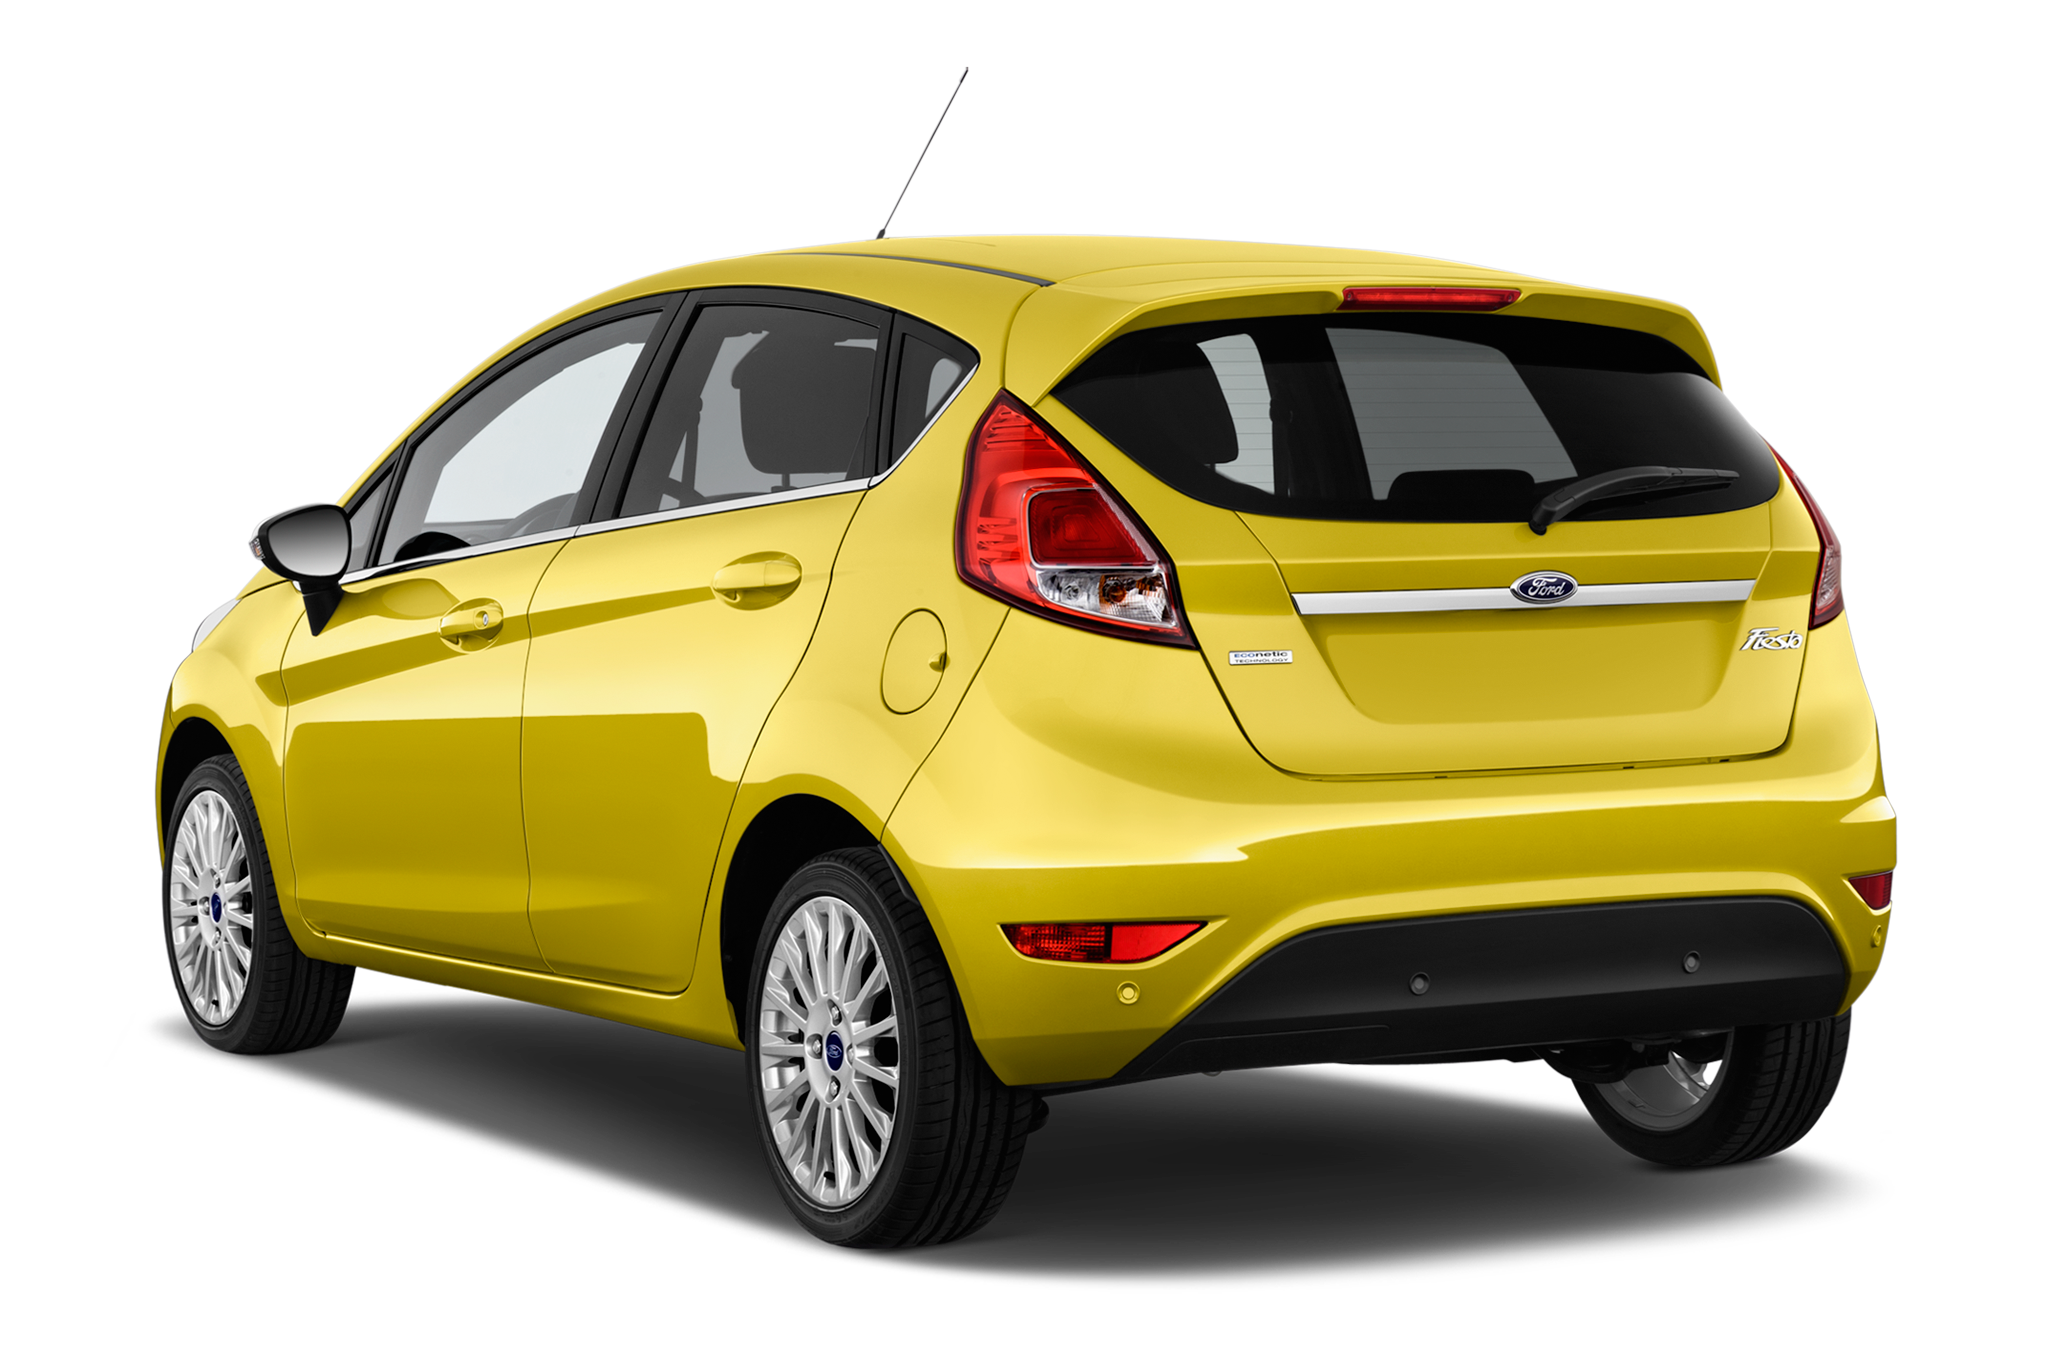 Ford clipart ford fiesta Fiesta images Ford in Clipart